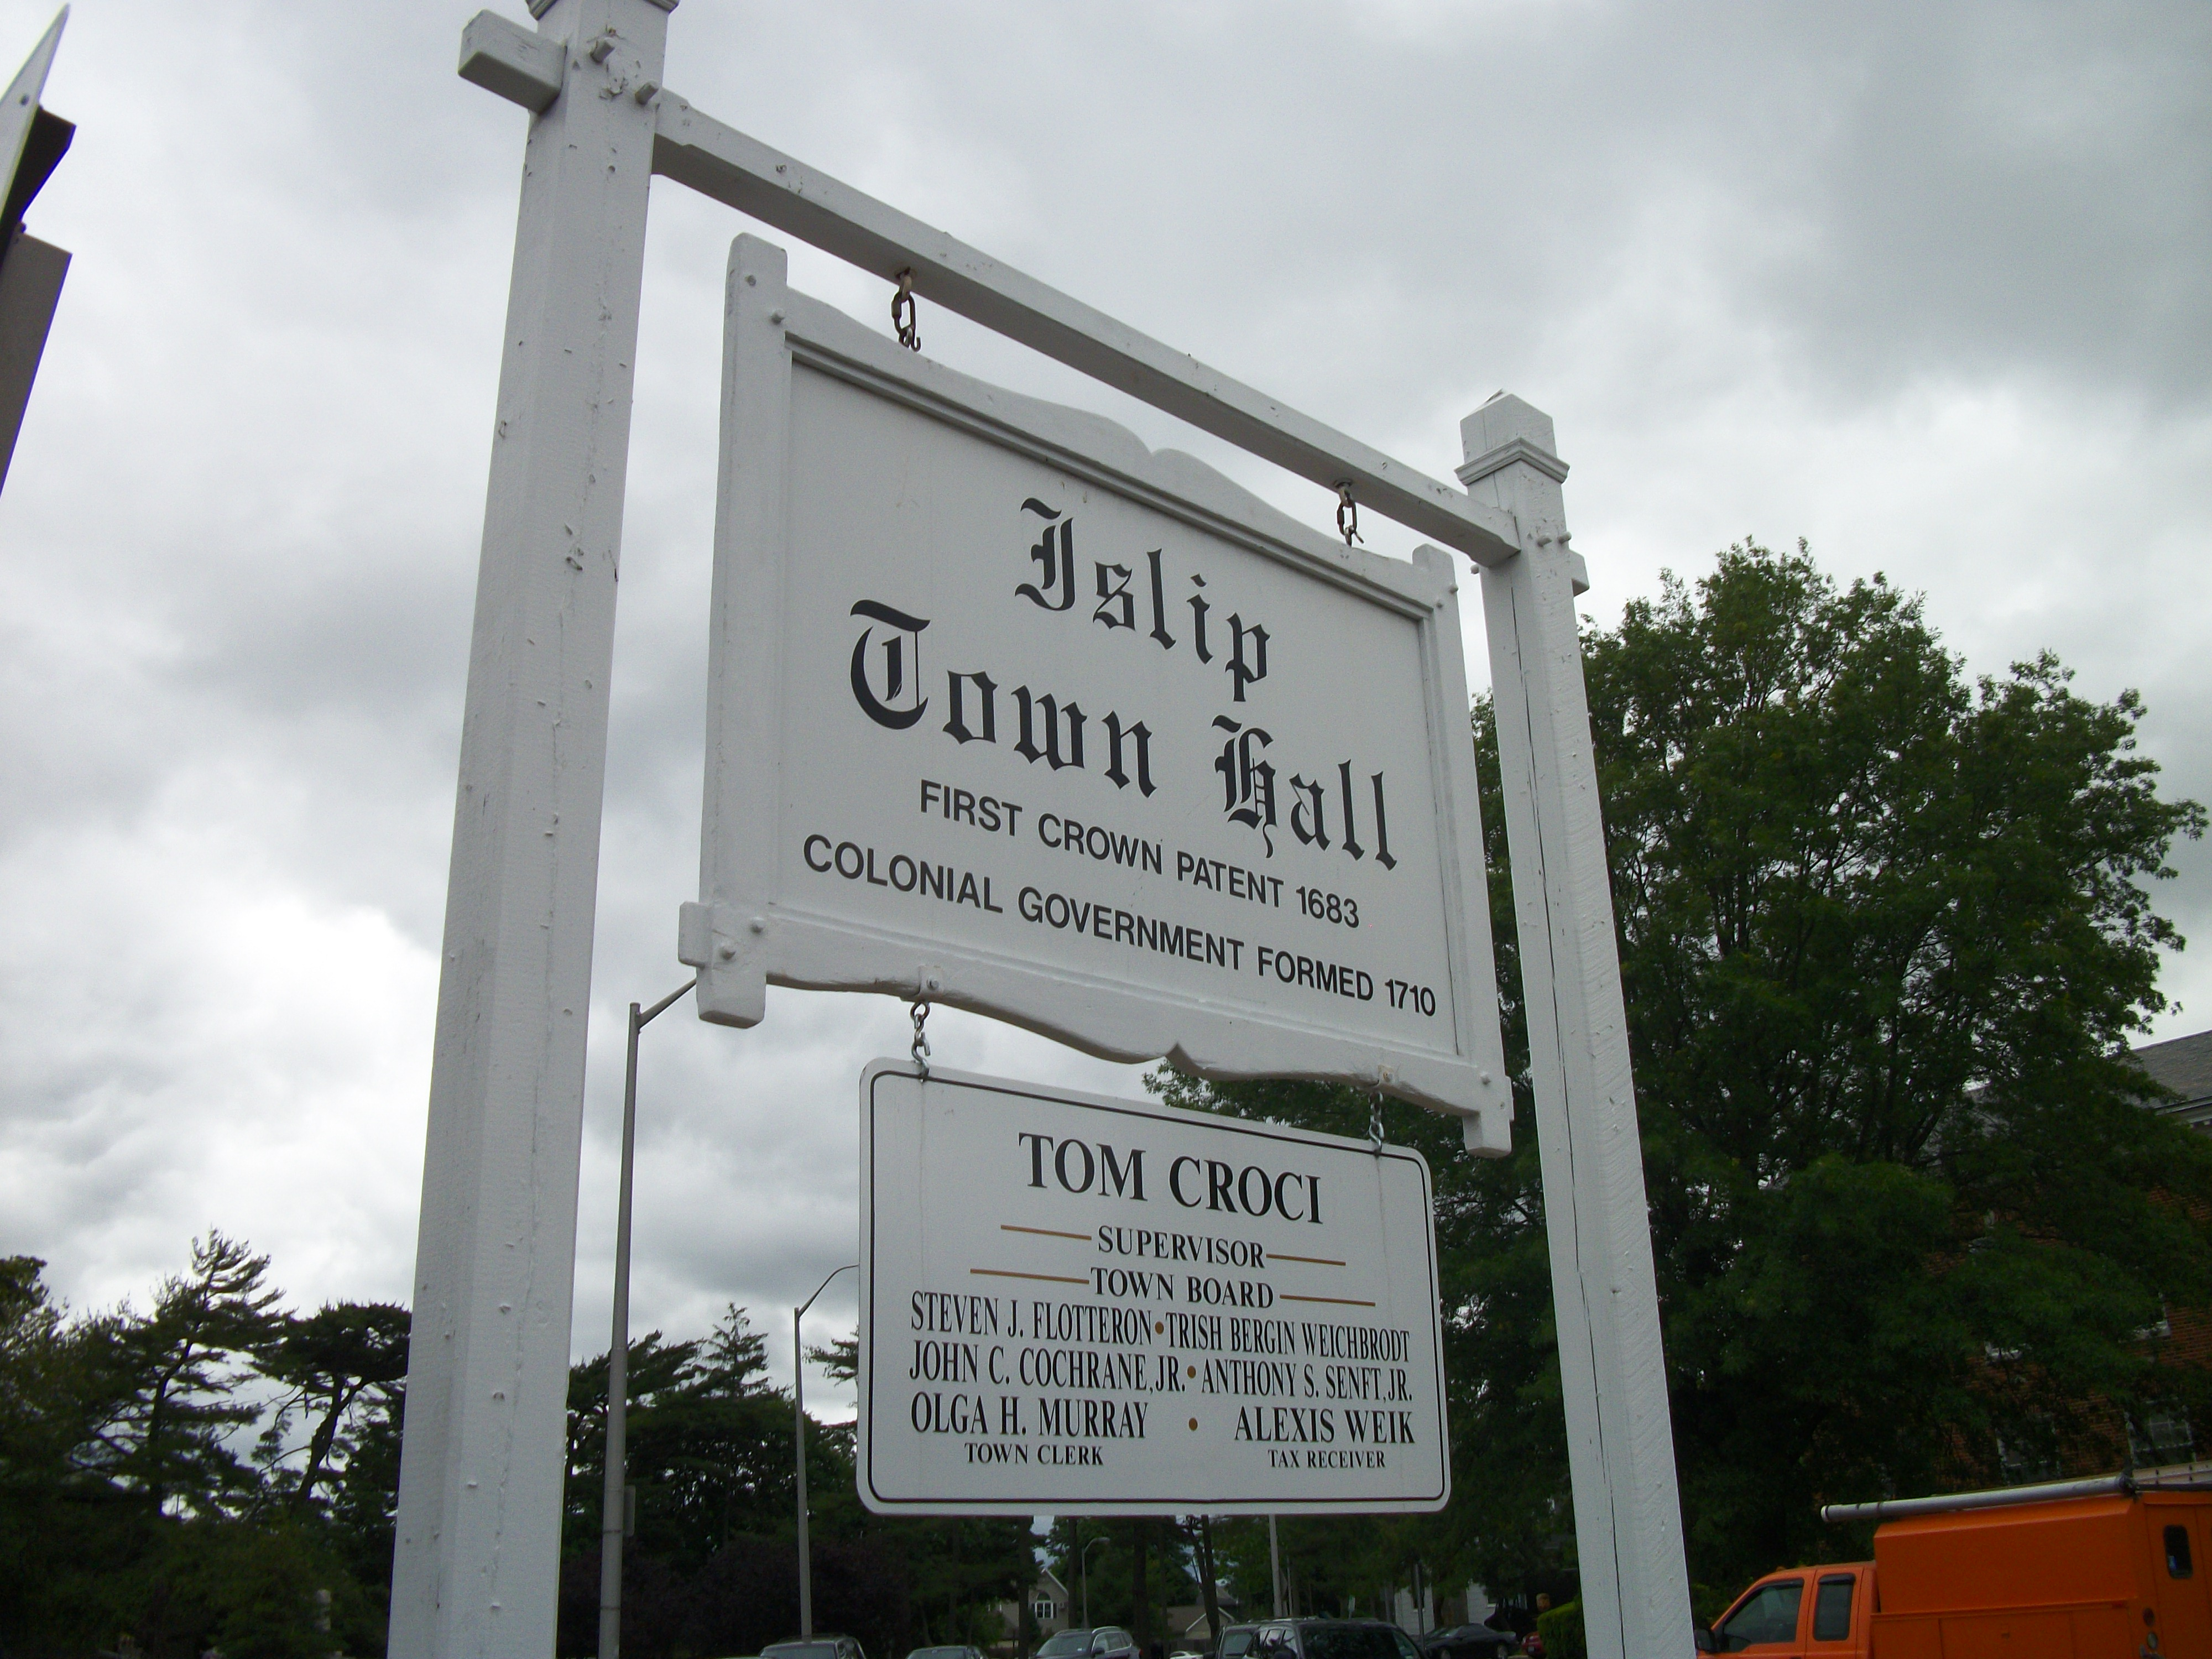 image islip town hall sign west view